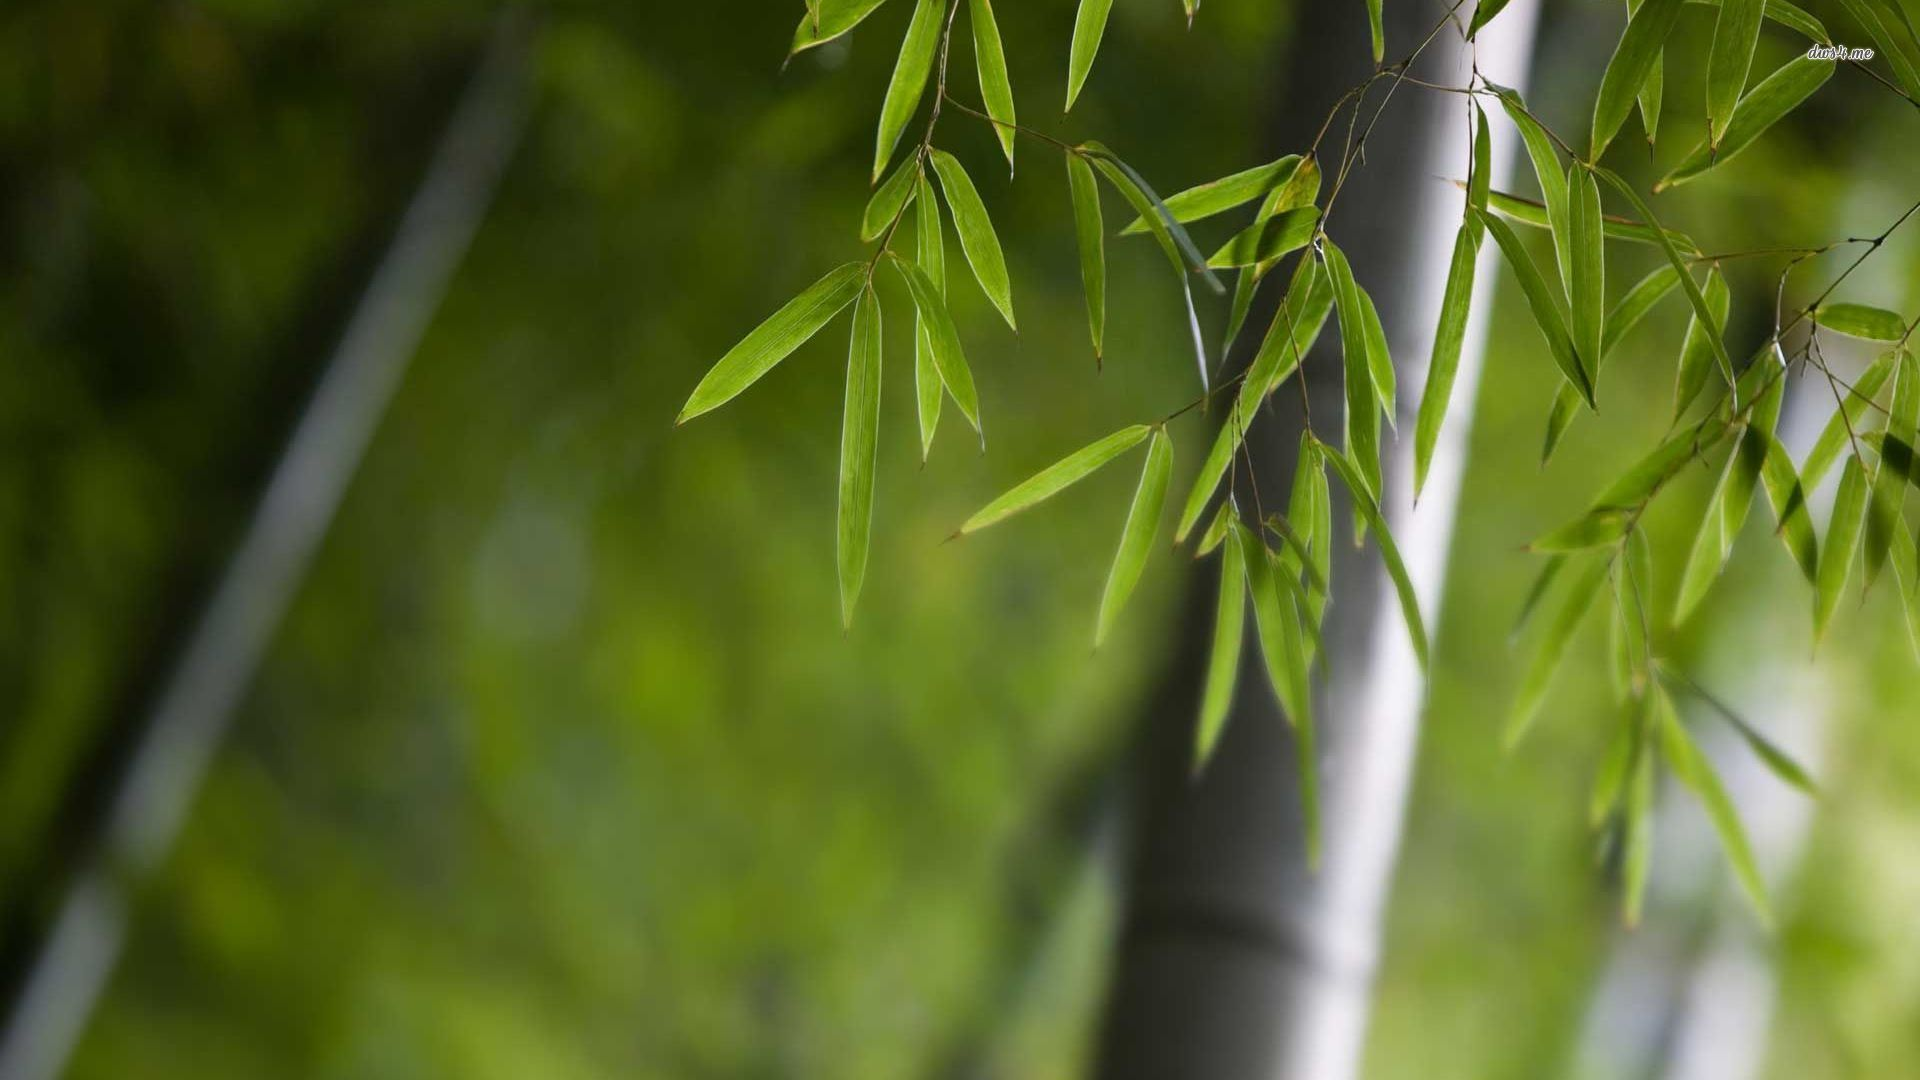 bamboo plant picture